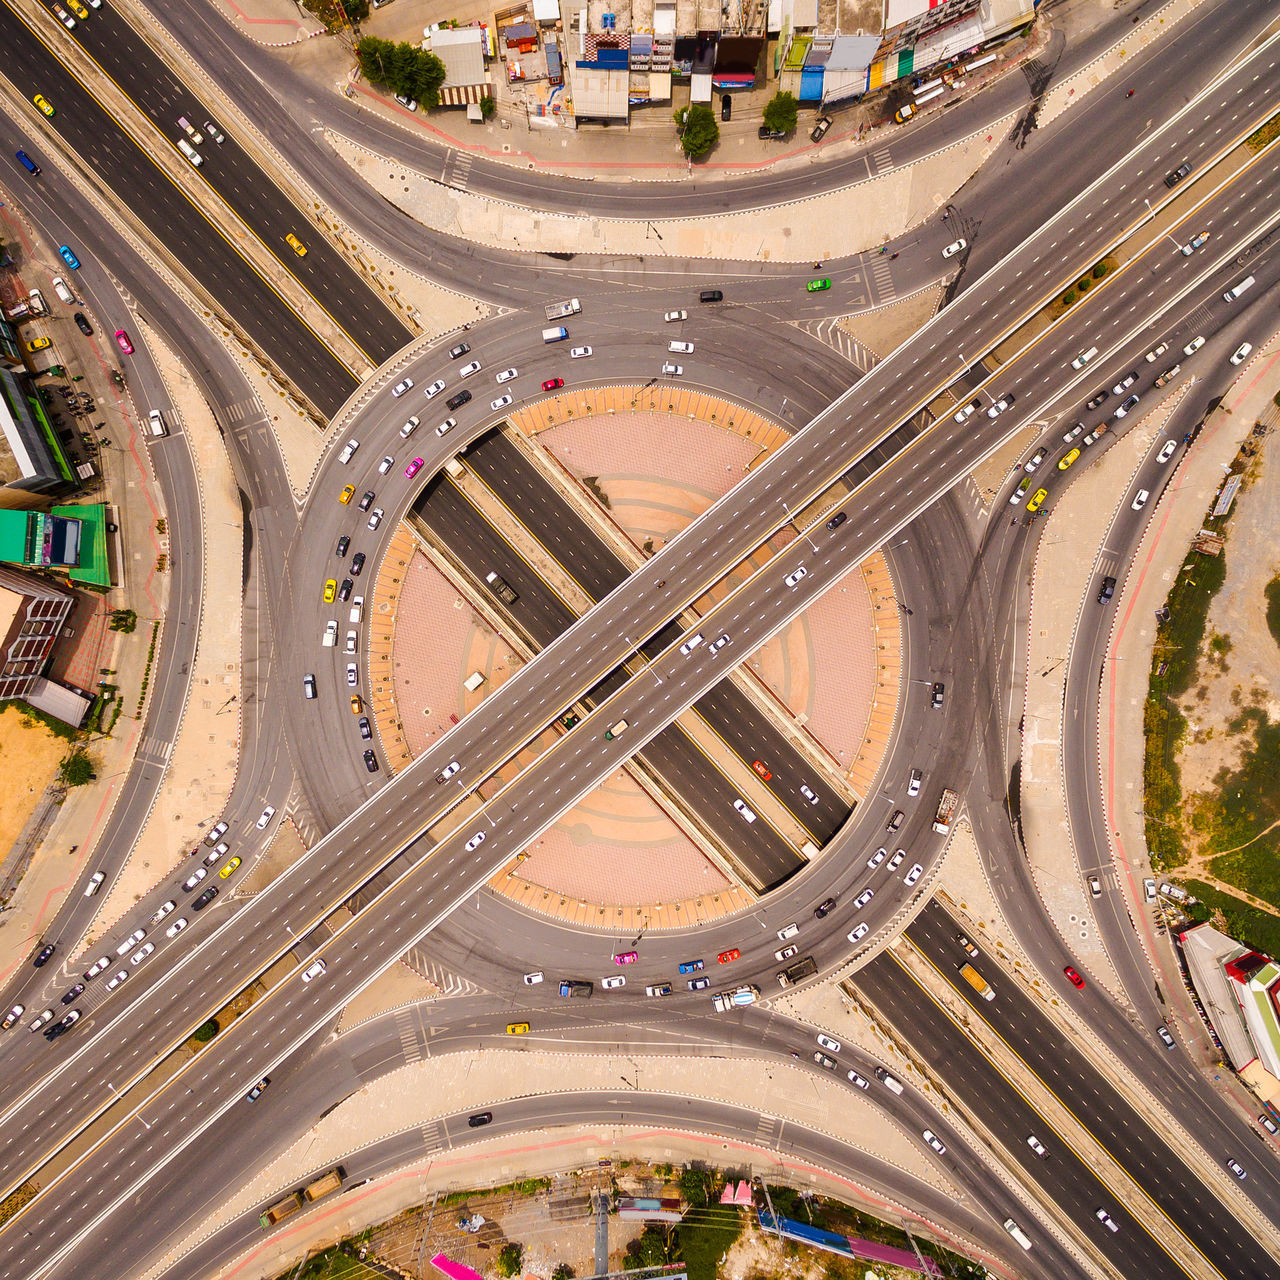 Aerial View Built Structure Car City City Life Connection Directly Above Driving Flying High Futuristic High Angle View Highway Illuminated Mode Of Transport Multiple Lane Highway Outdoors Overpass Road Road Intersection Speed Street Street Light Traffic Transportation Two Lane Highway